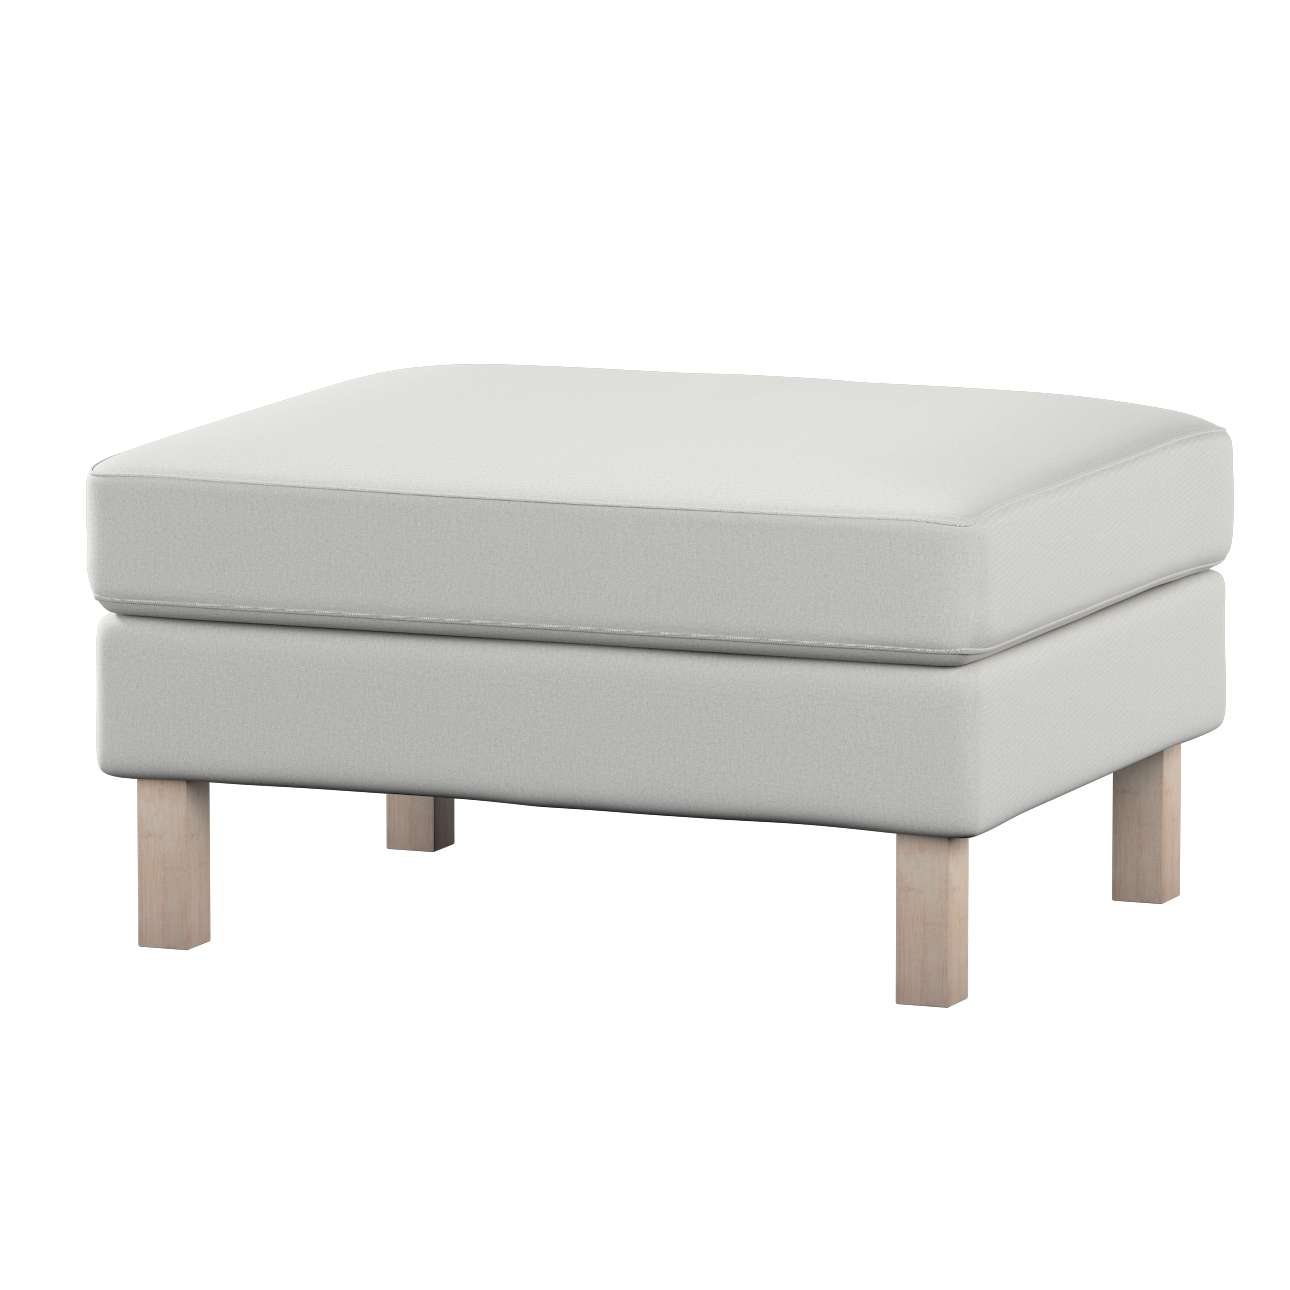 Karlstad footstool cover Karlstad footstool cover in collection Etna, fabric: 705-90